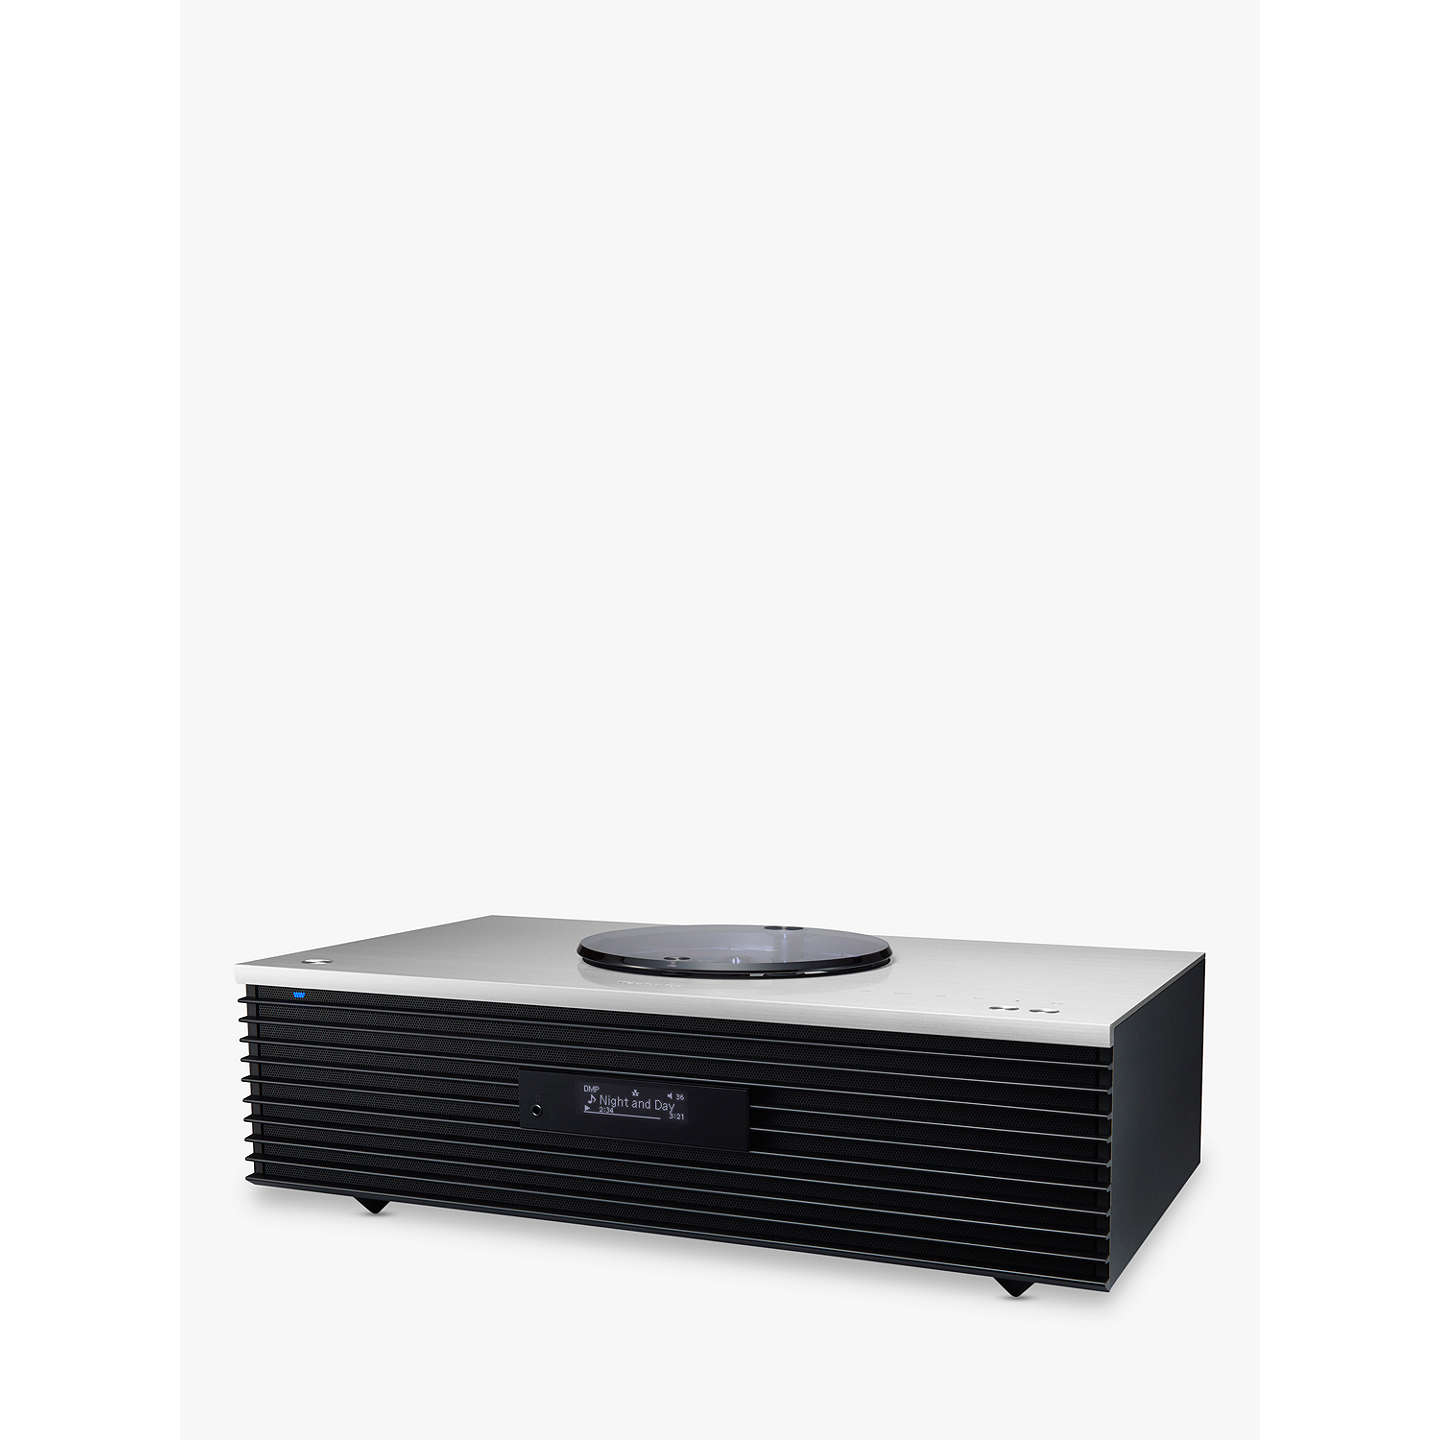 BuyTechnics SC-C70 OTTAVA forte Premium High Resolution Hi-Fi System With Bluetooth, Wi-Fi & AirPlay, Silver Online at johnlewis.com